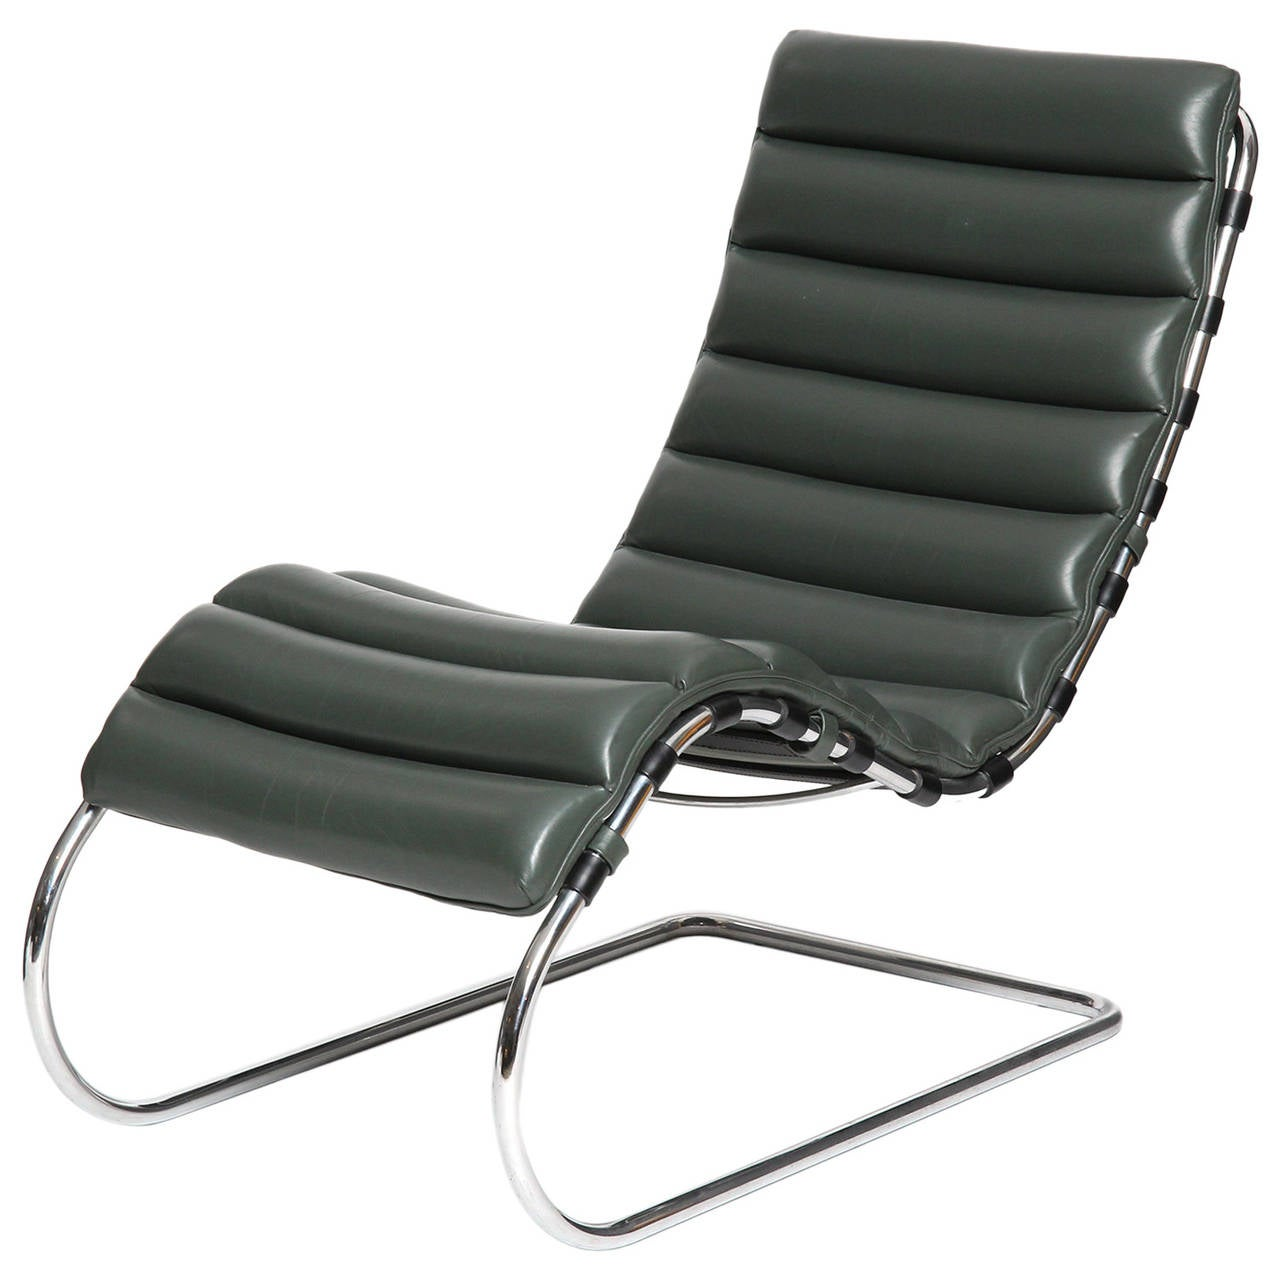 lounge chair by ludwig mies van der rohe at 1stdibs. Black Bedroom Furniture Sets. Home Design Ideas